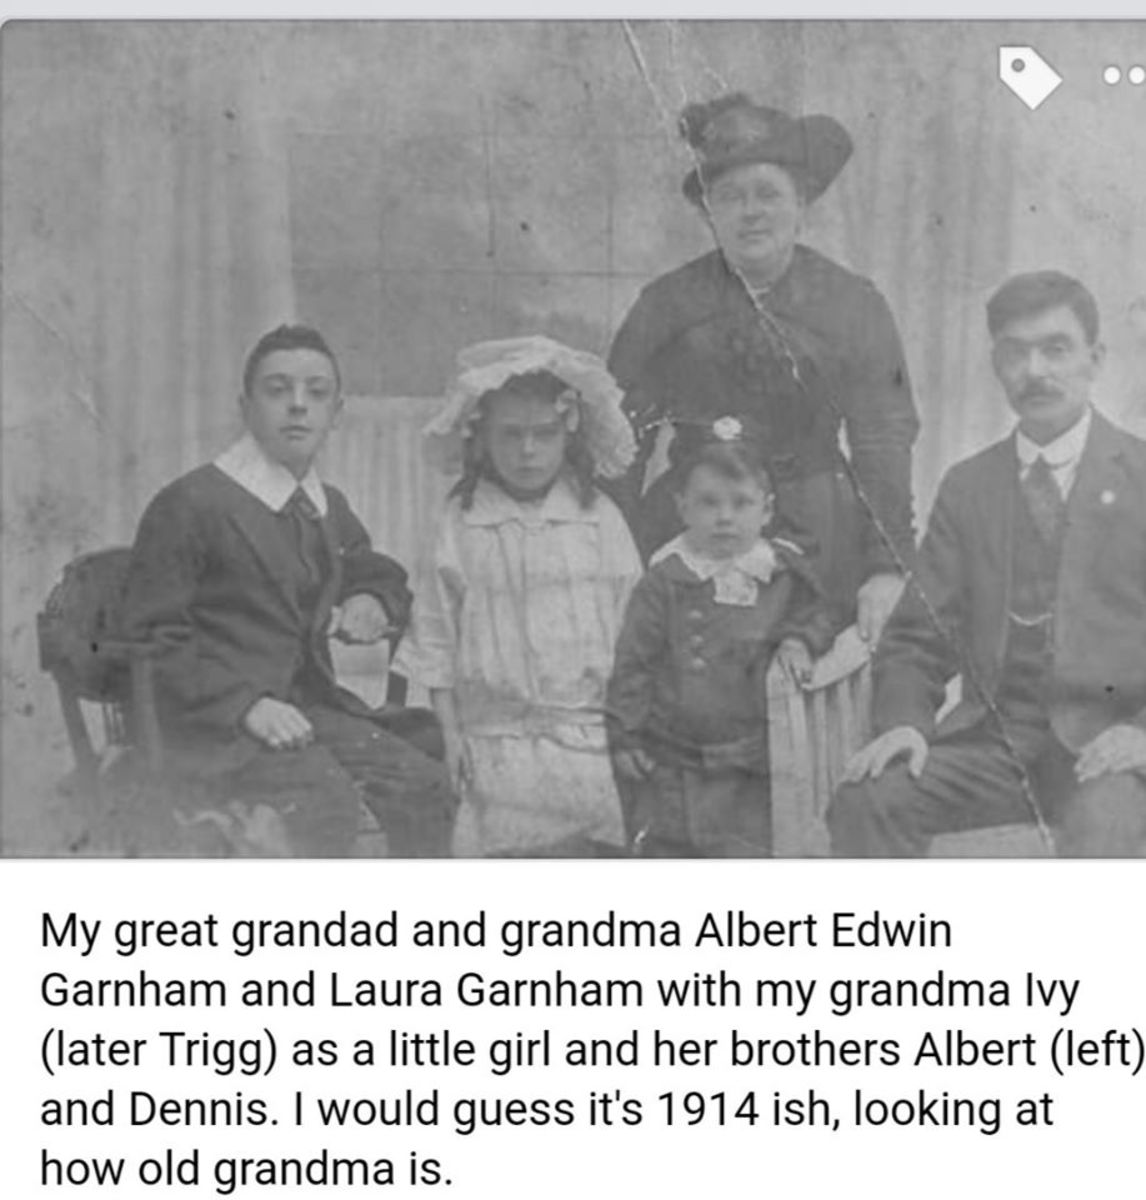 Garnham family photo, showing my grandma as a young girl with her brothers. This was before their sister Madge was born.